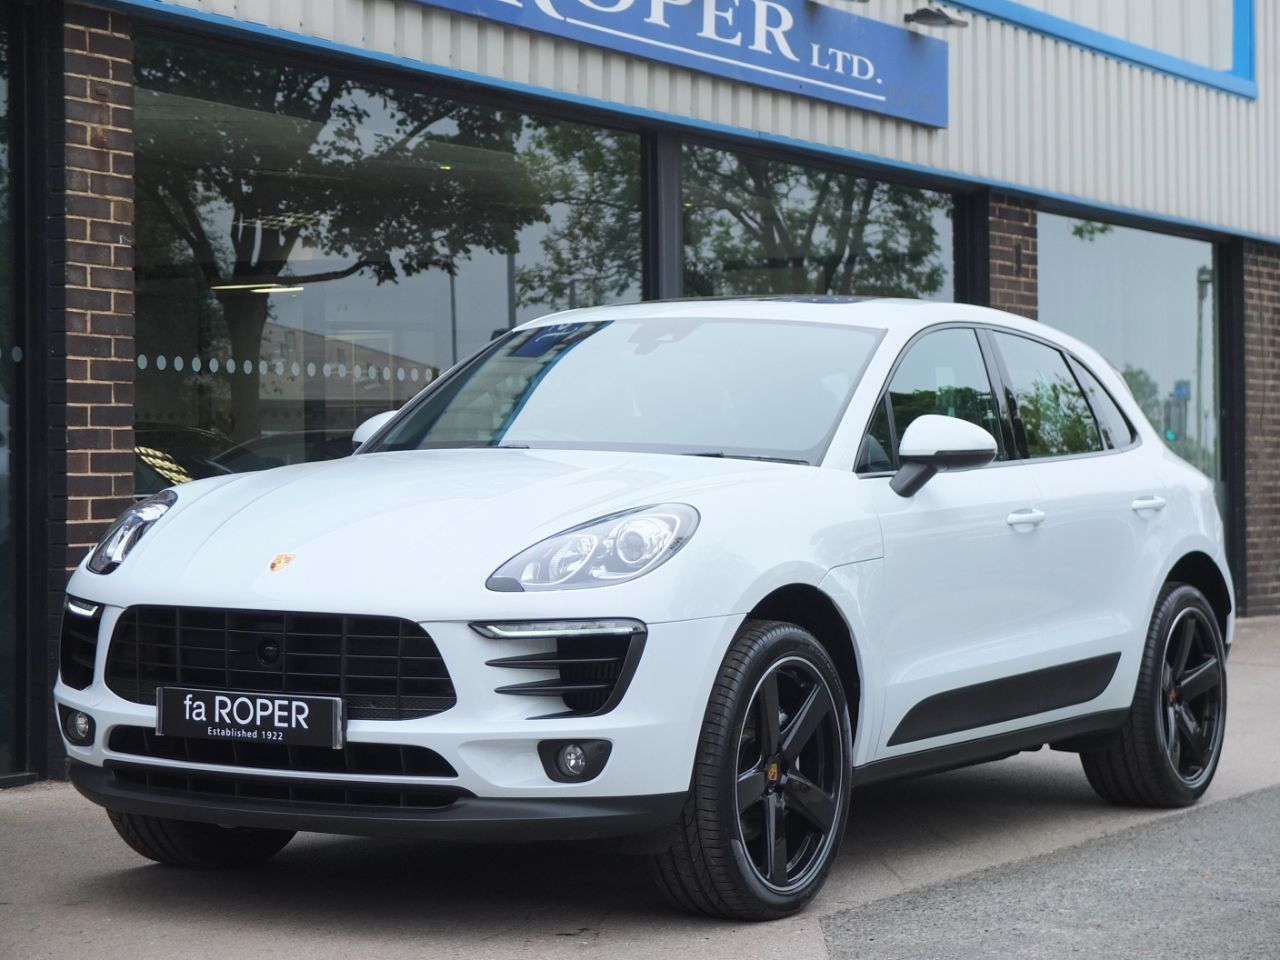 Porsche Macan 3.0 V6 S PDK 340ps Estate Petrol Carrara White MetallicPorsche Macan 3.0 V6 S PDK 340ps Estate Petrol Carrara White Metallic at fa Roper Ltd Bradford